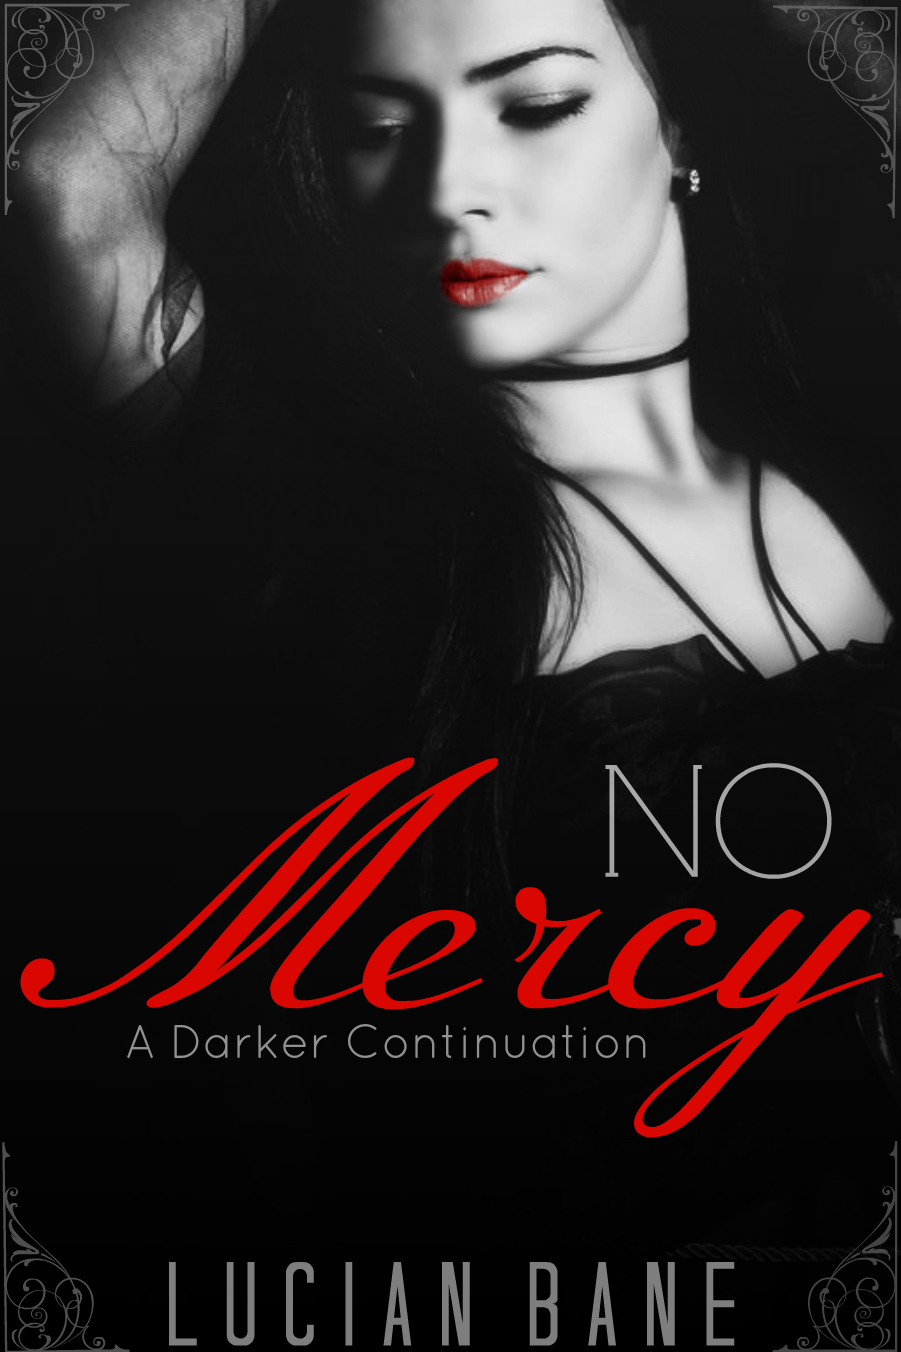 no mercy cover red 3 darker